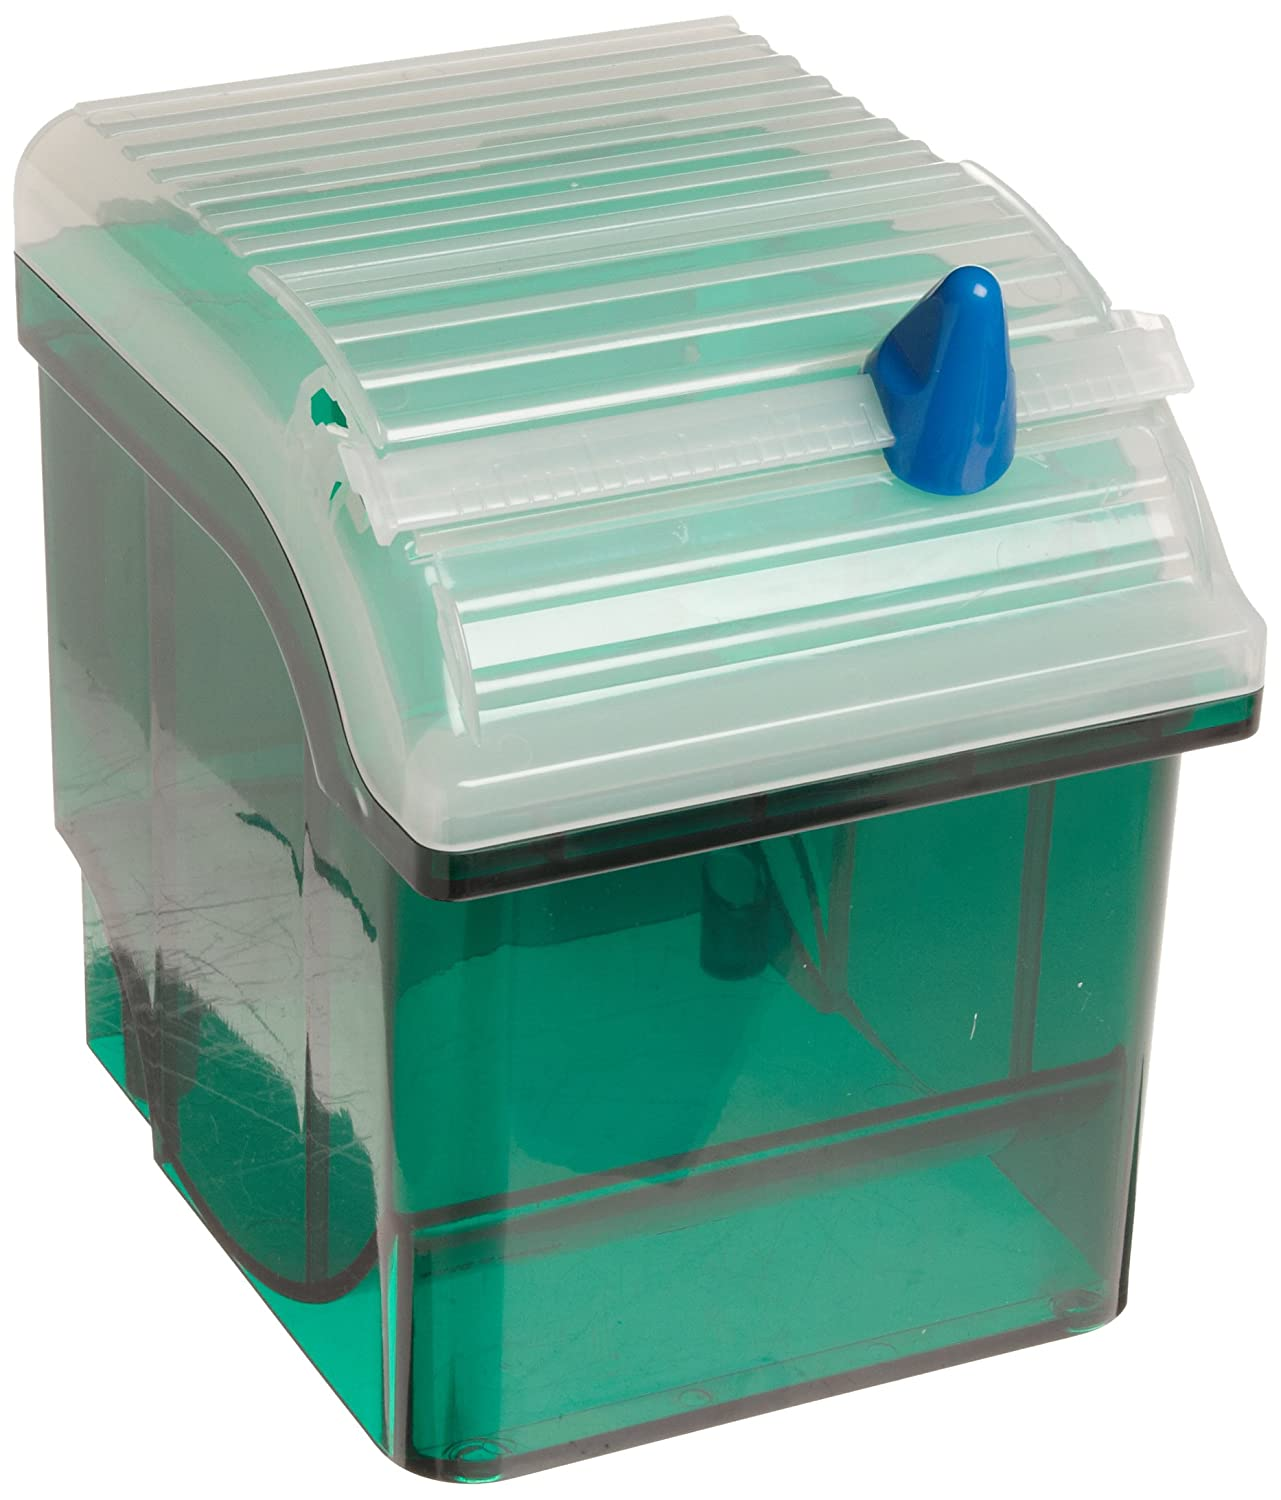 Heathrow Scientific HD234525C - Dispenser di parafilm, in plastica ABS, 120 x 156 x 171 mm, colore: verde HS234525C